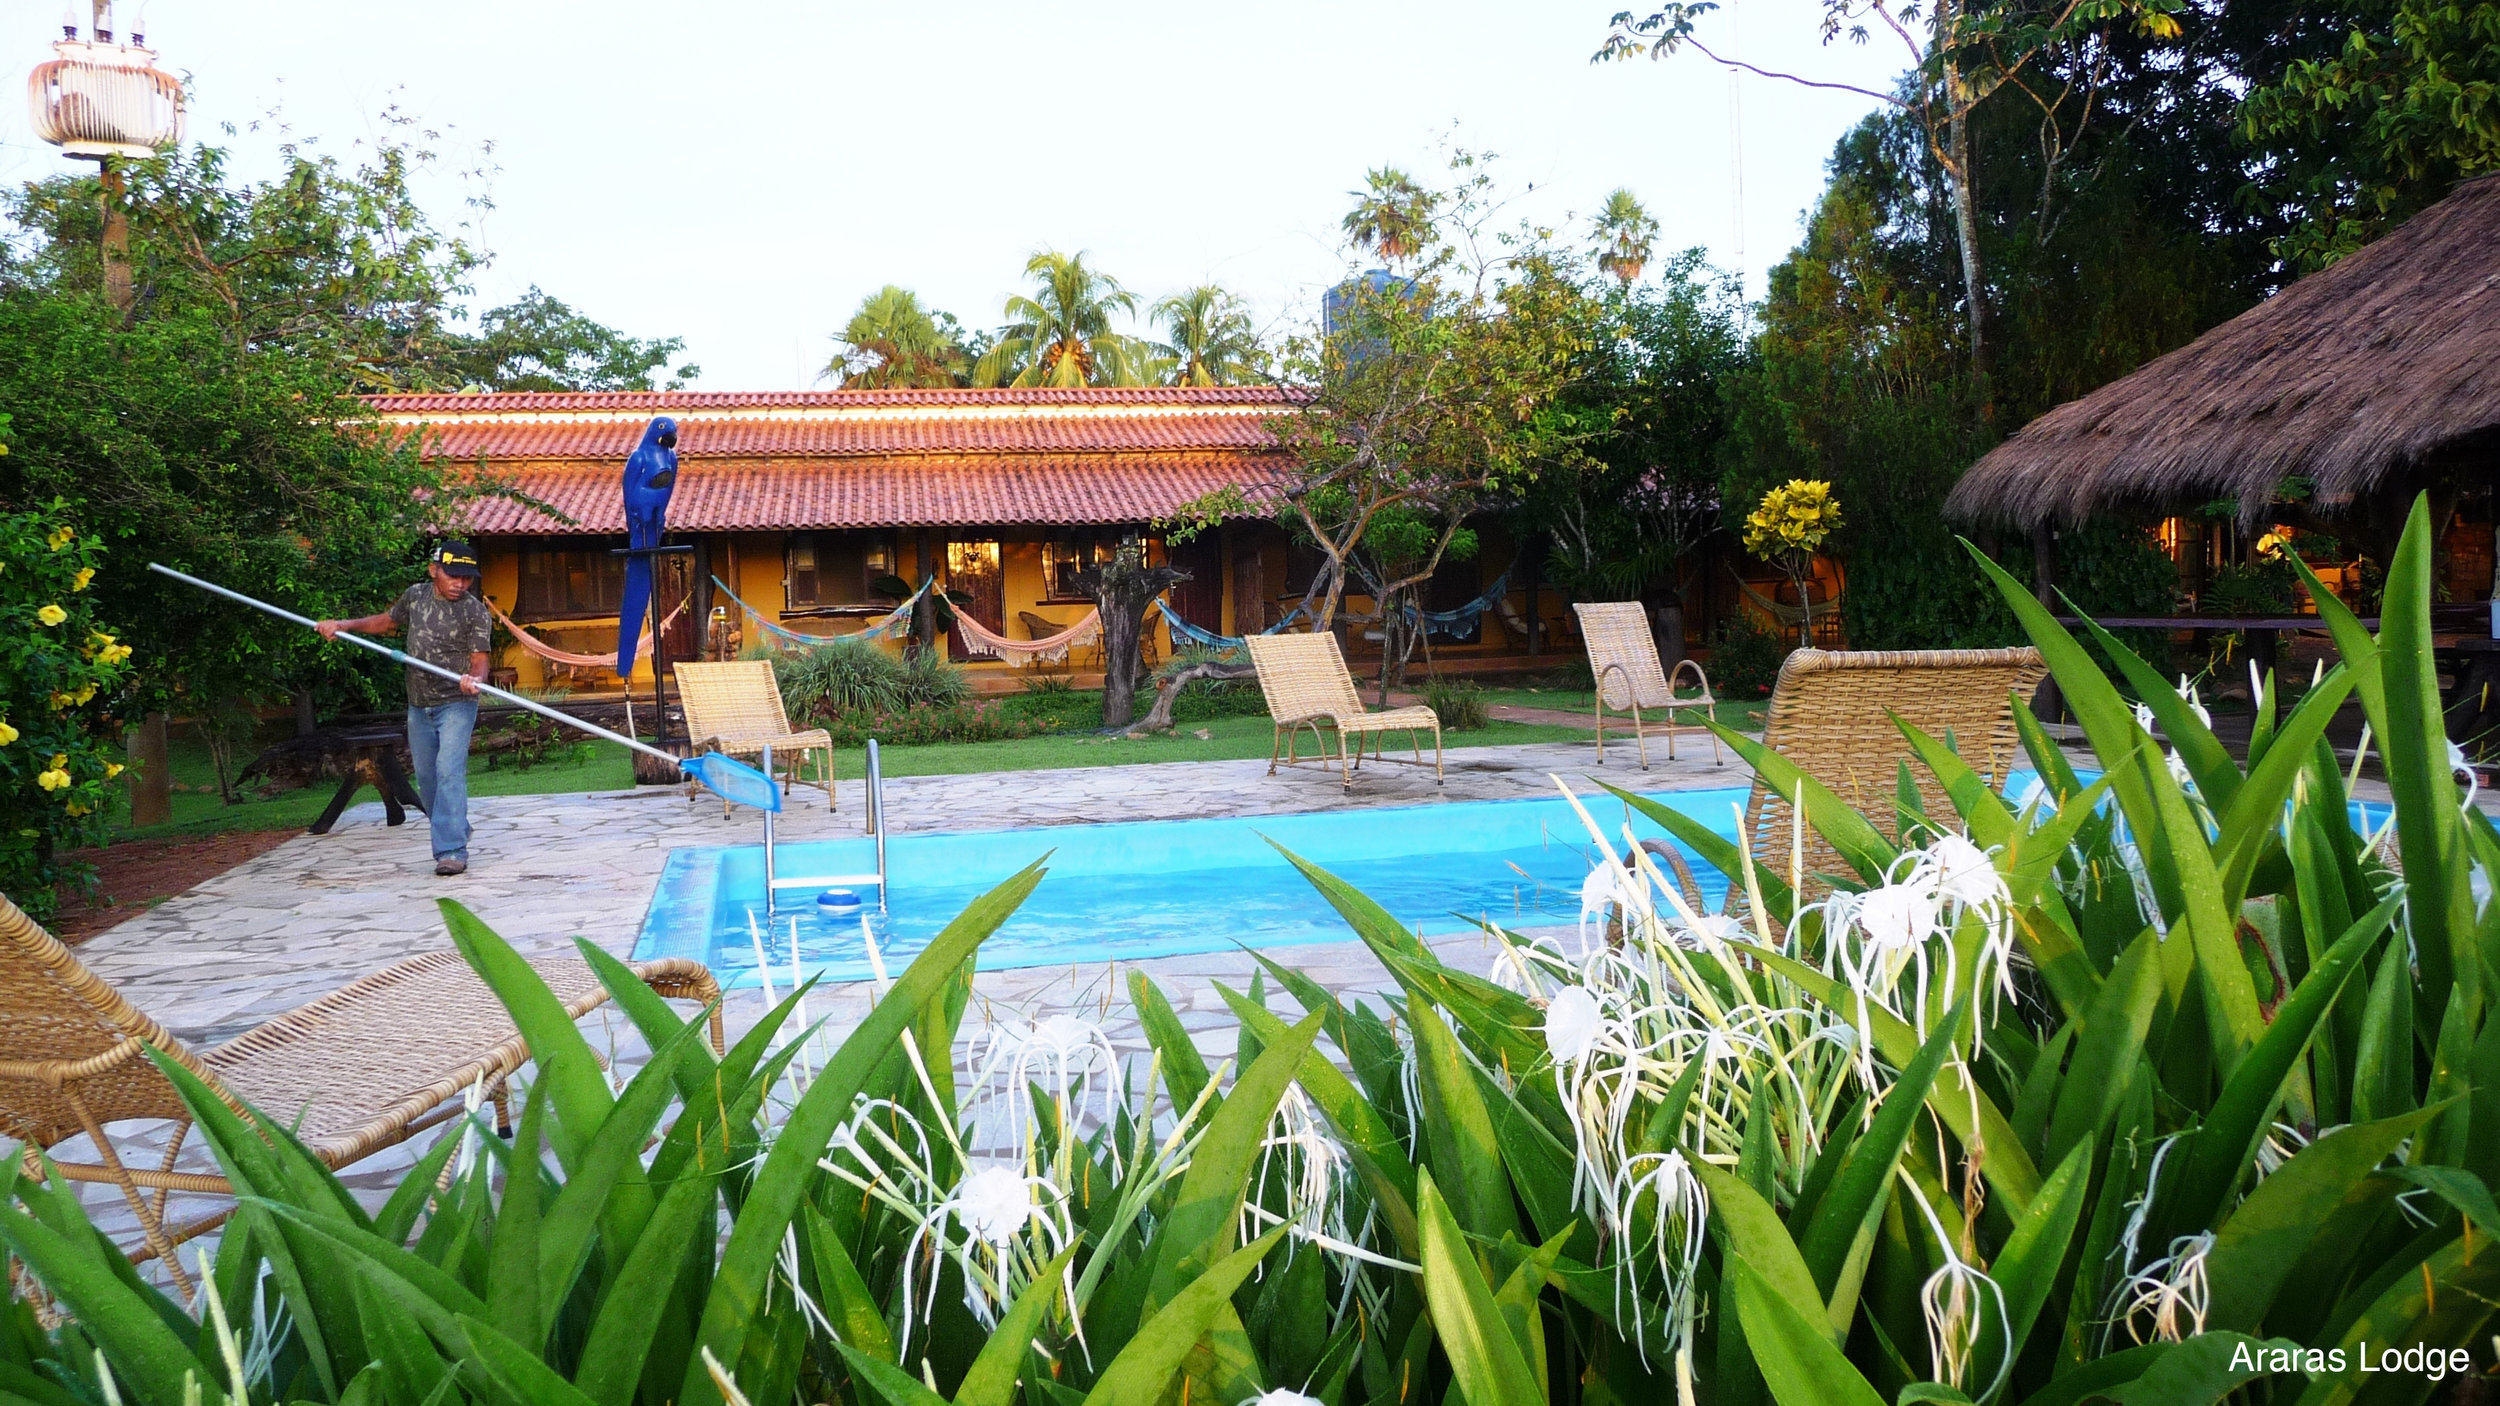 Pool at Araras EcoLodge, Pantanal